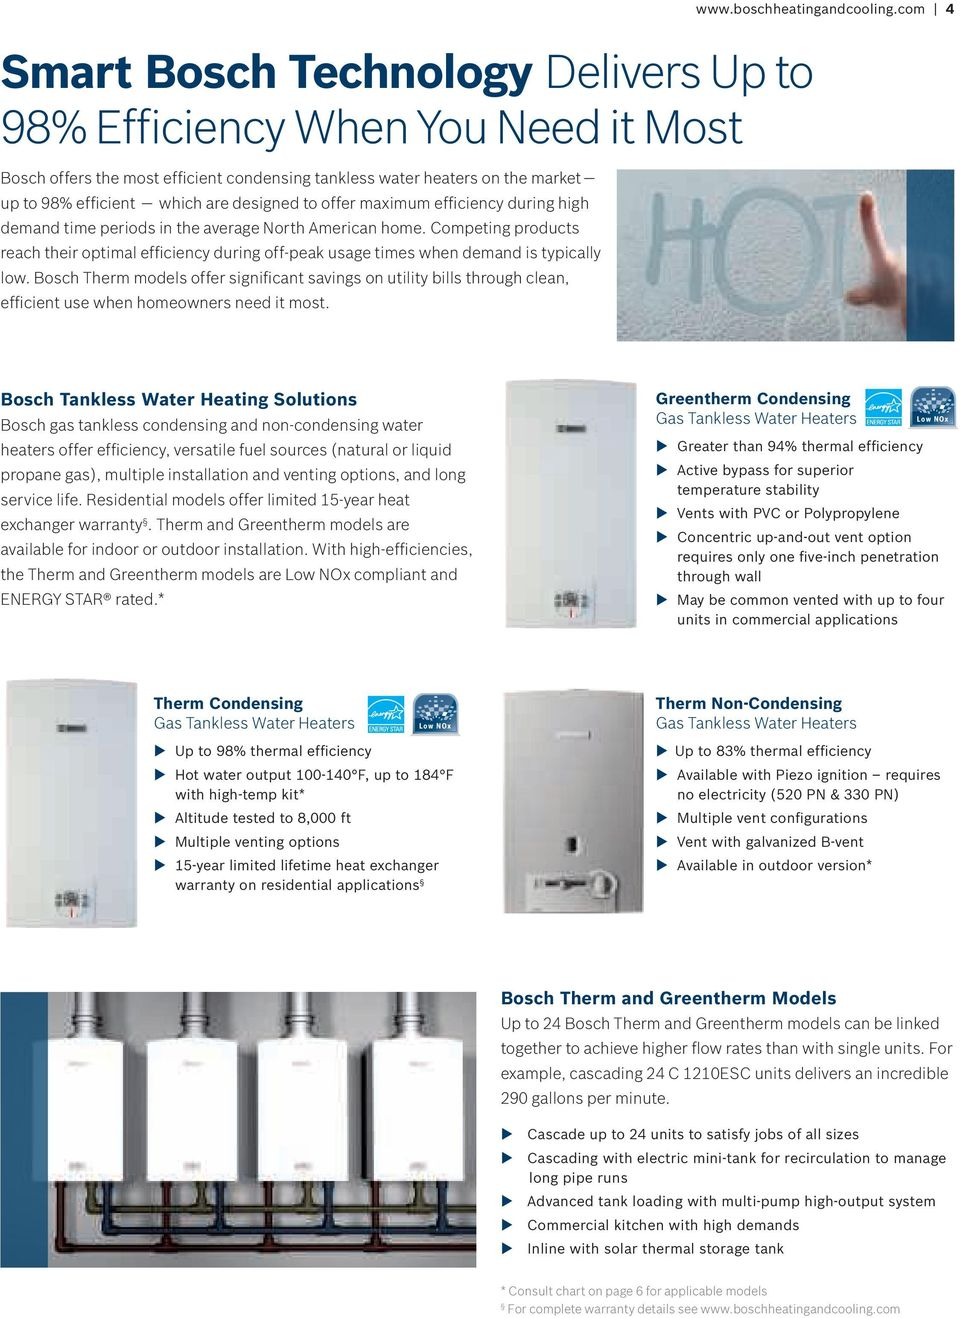 Wiring Diagram For Bosch Tankless Water Heater Model 20C4 from docplayer.net